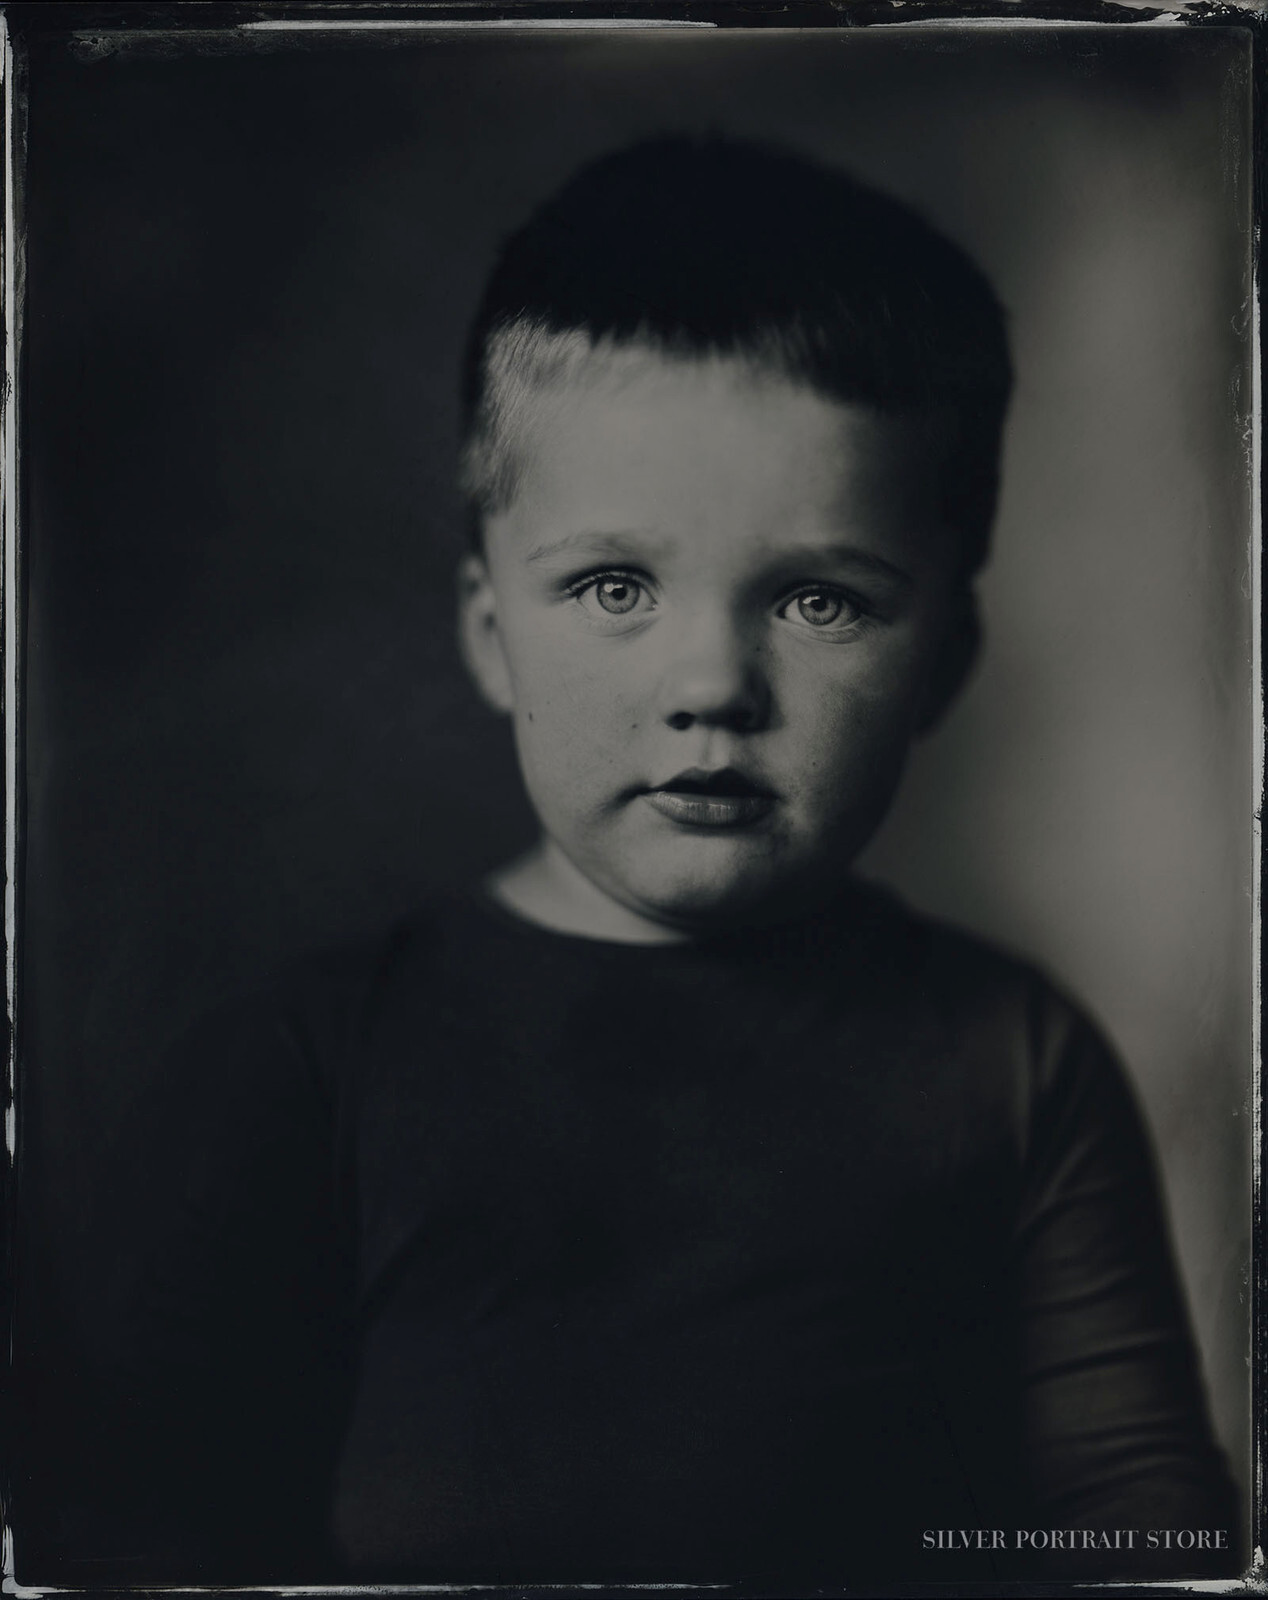 Ysbrand-Silver Portrait Store-Wet plate collodion-Tintype 20 x 25 cm.